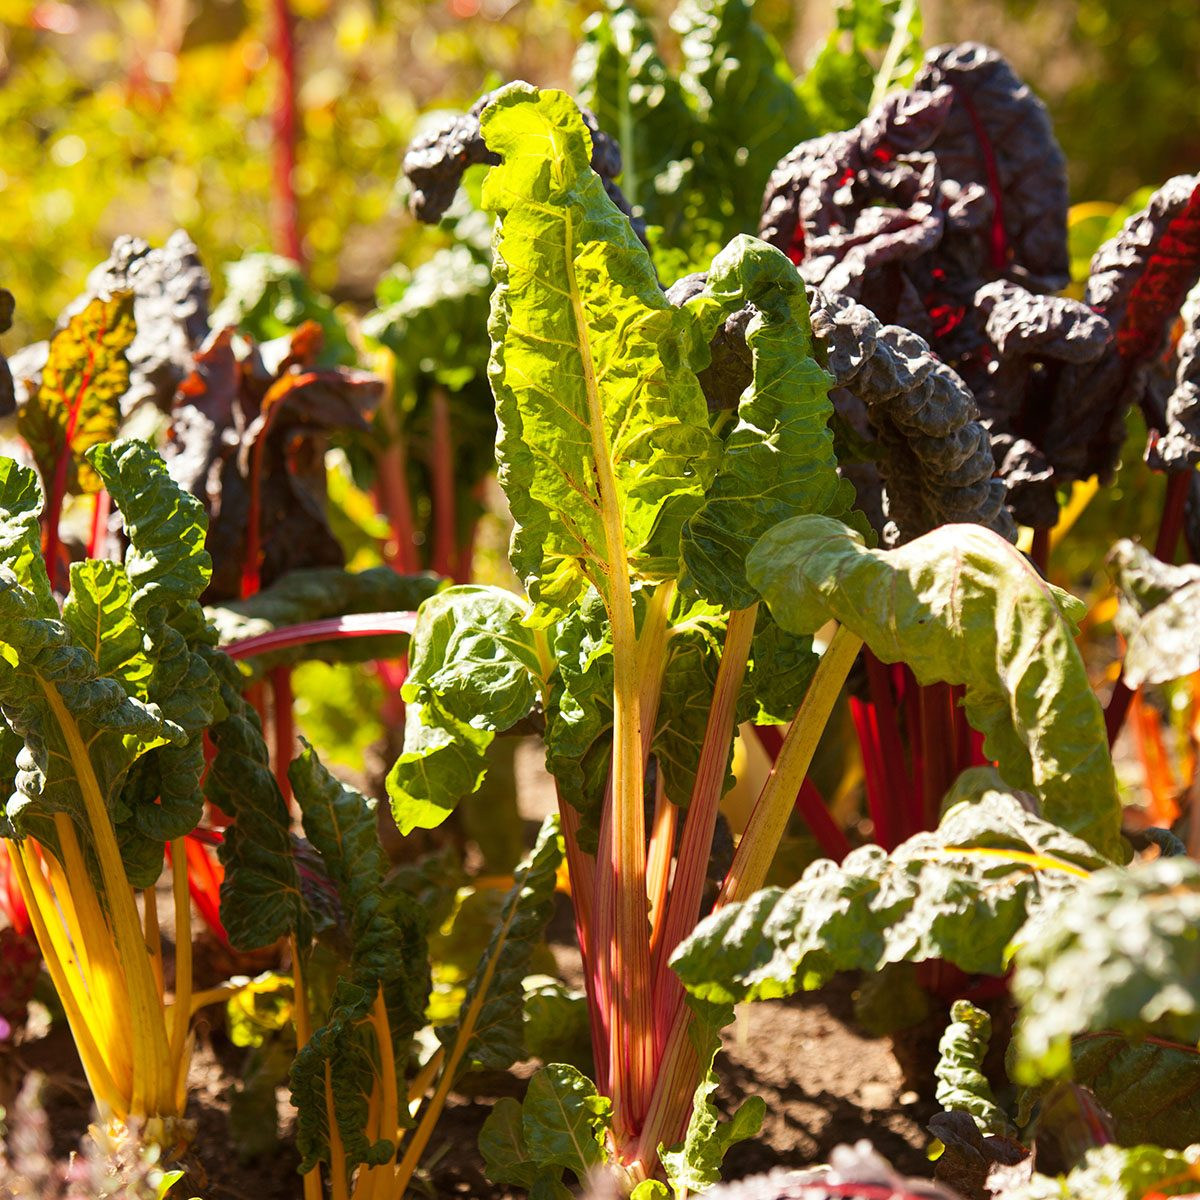 Growing rainbow chard